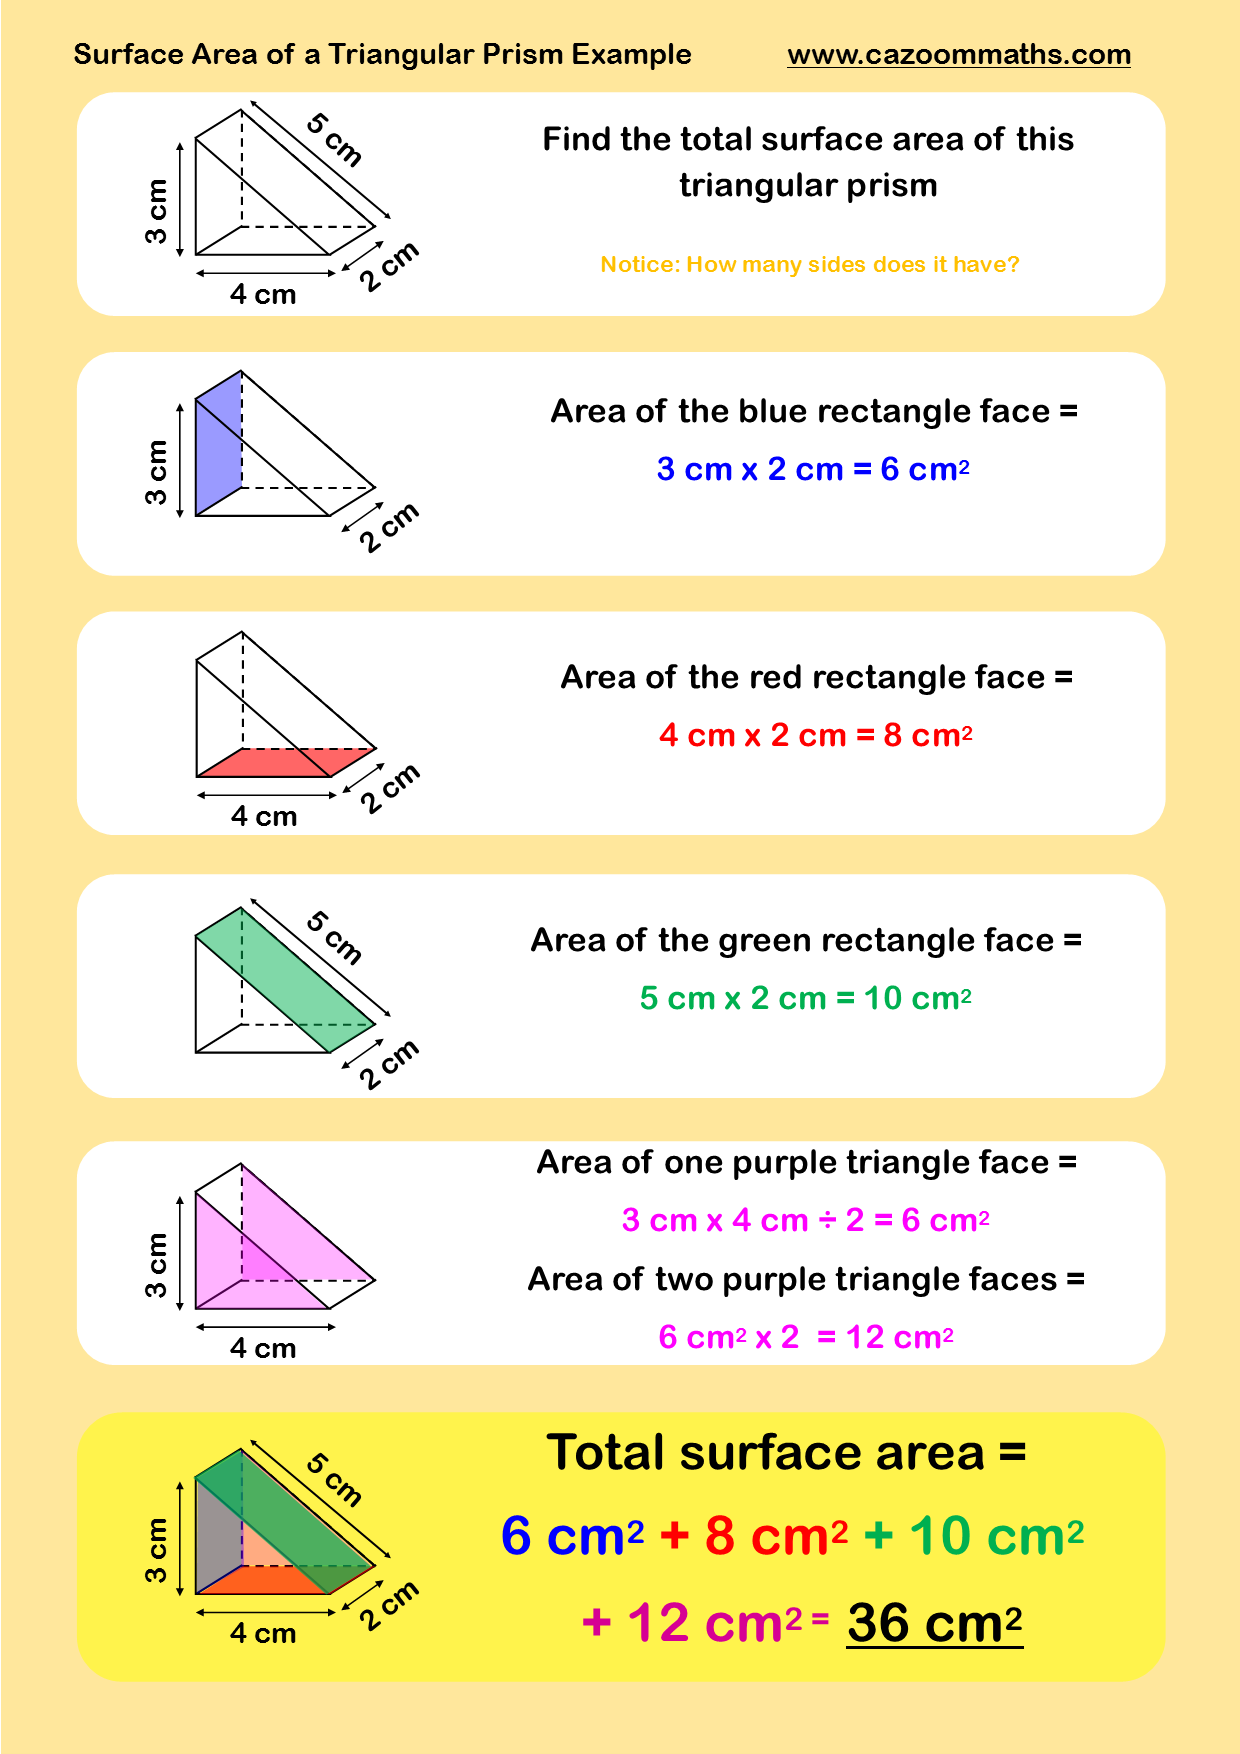 worksheet Volume Of Triangular Prism Worksheet Pdf surface area of a triangular prism example tutoring pinterest math prism